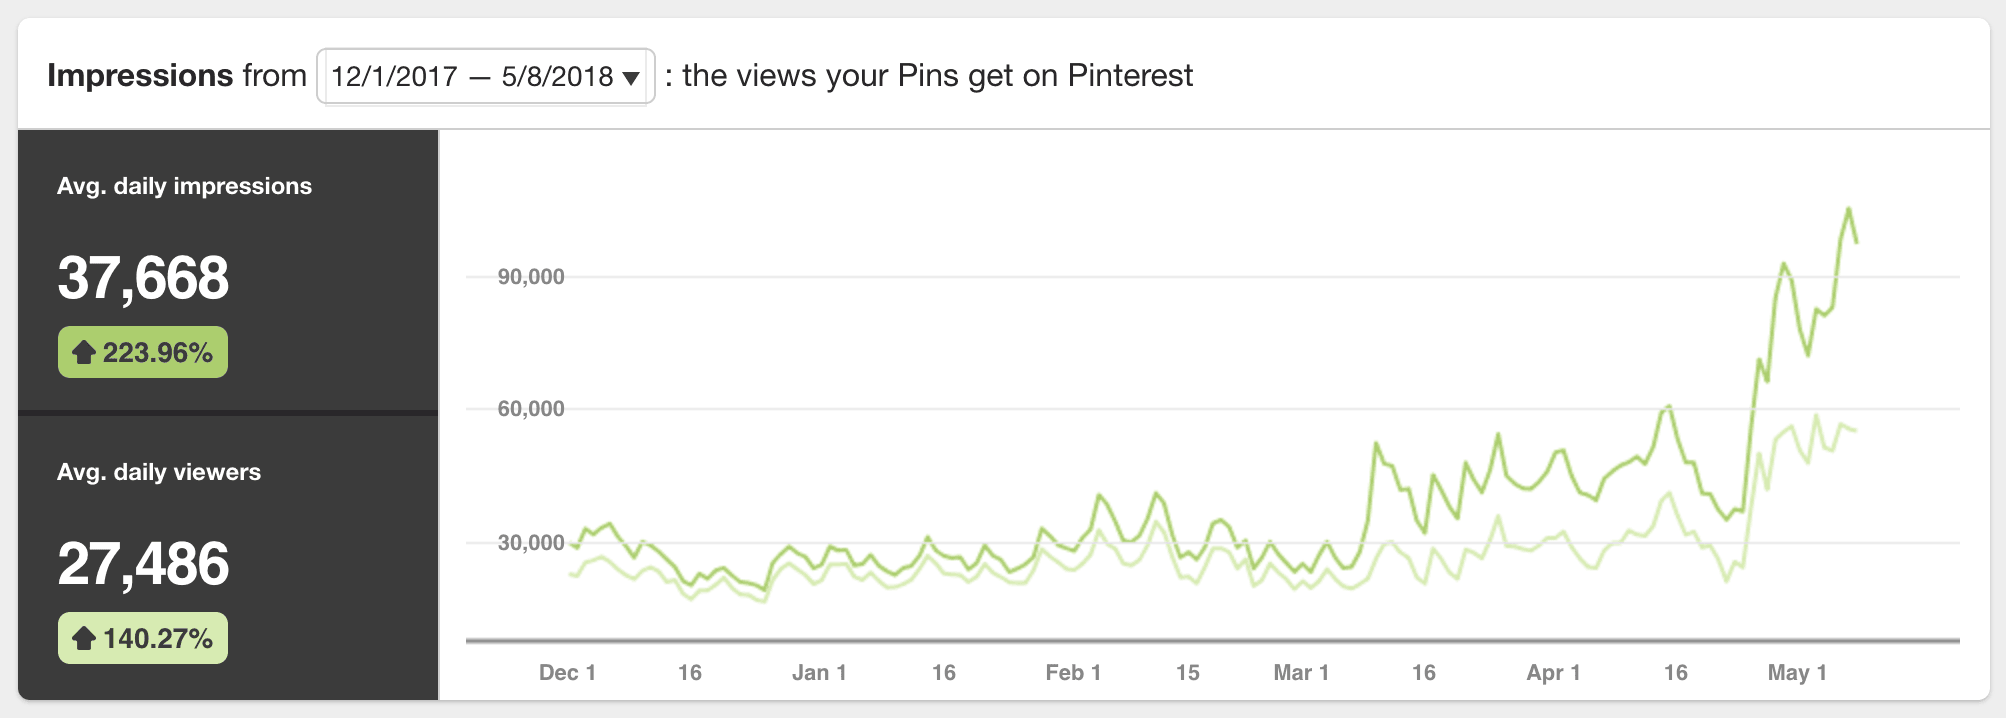 Pinterest pin exposure and views growth 6 months 2018